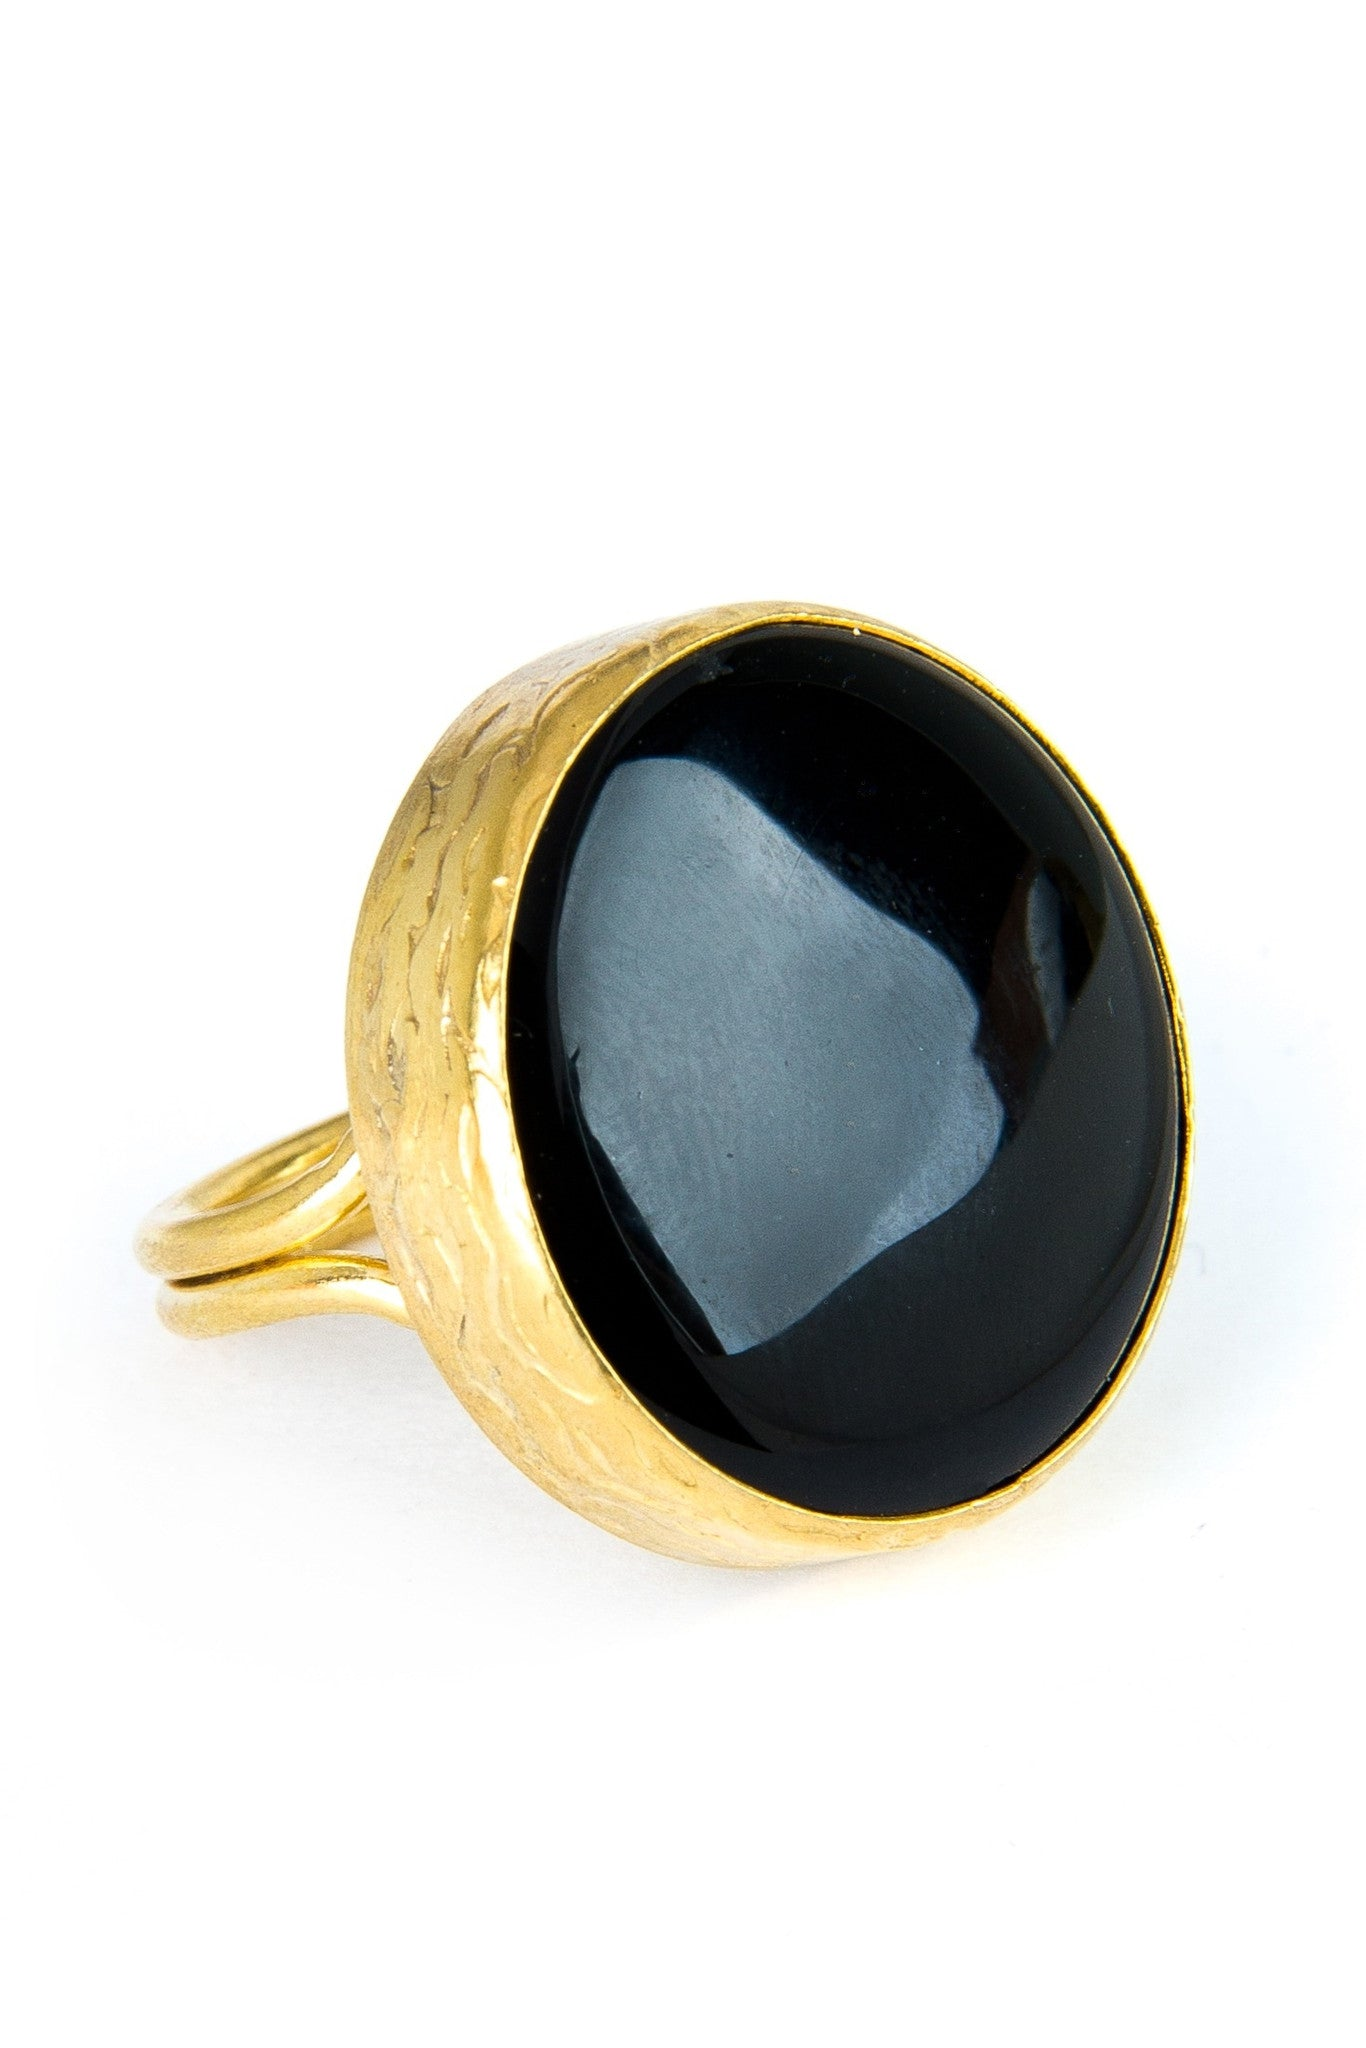 Black Onyx Gemstone Gold Ring - Lulugem.com